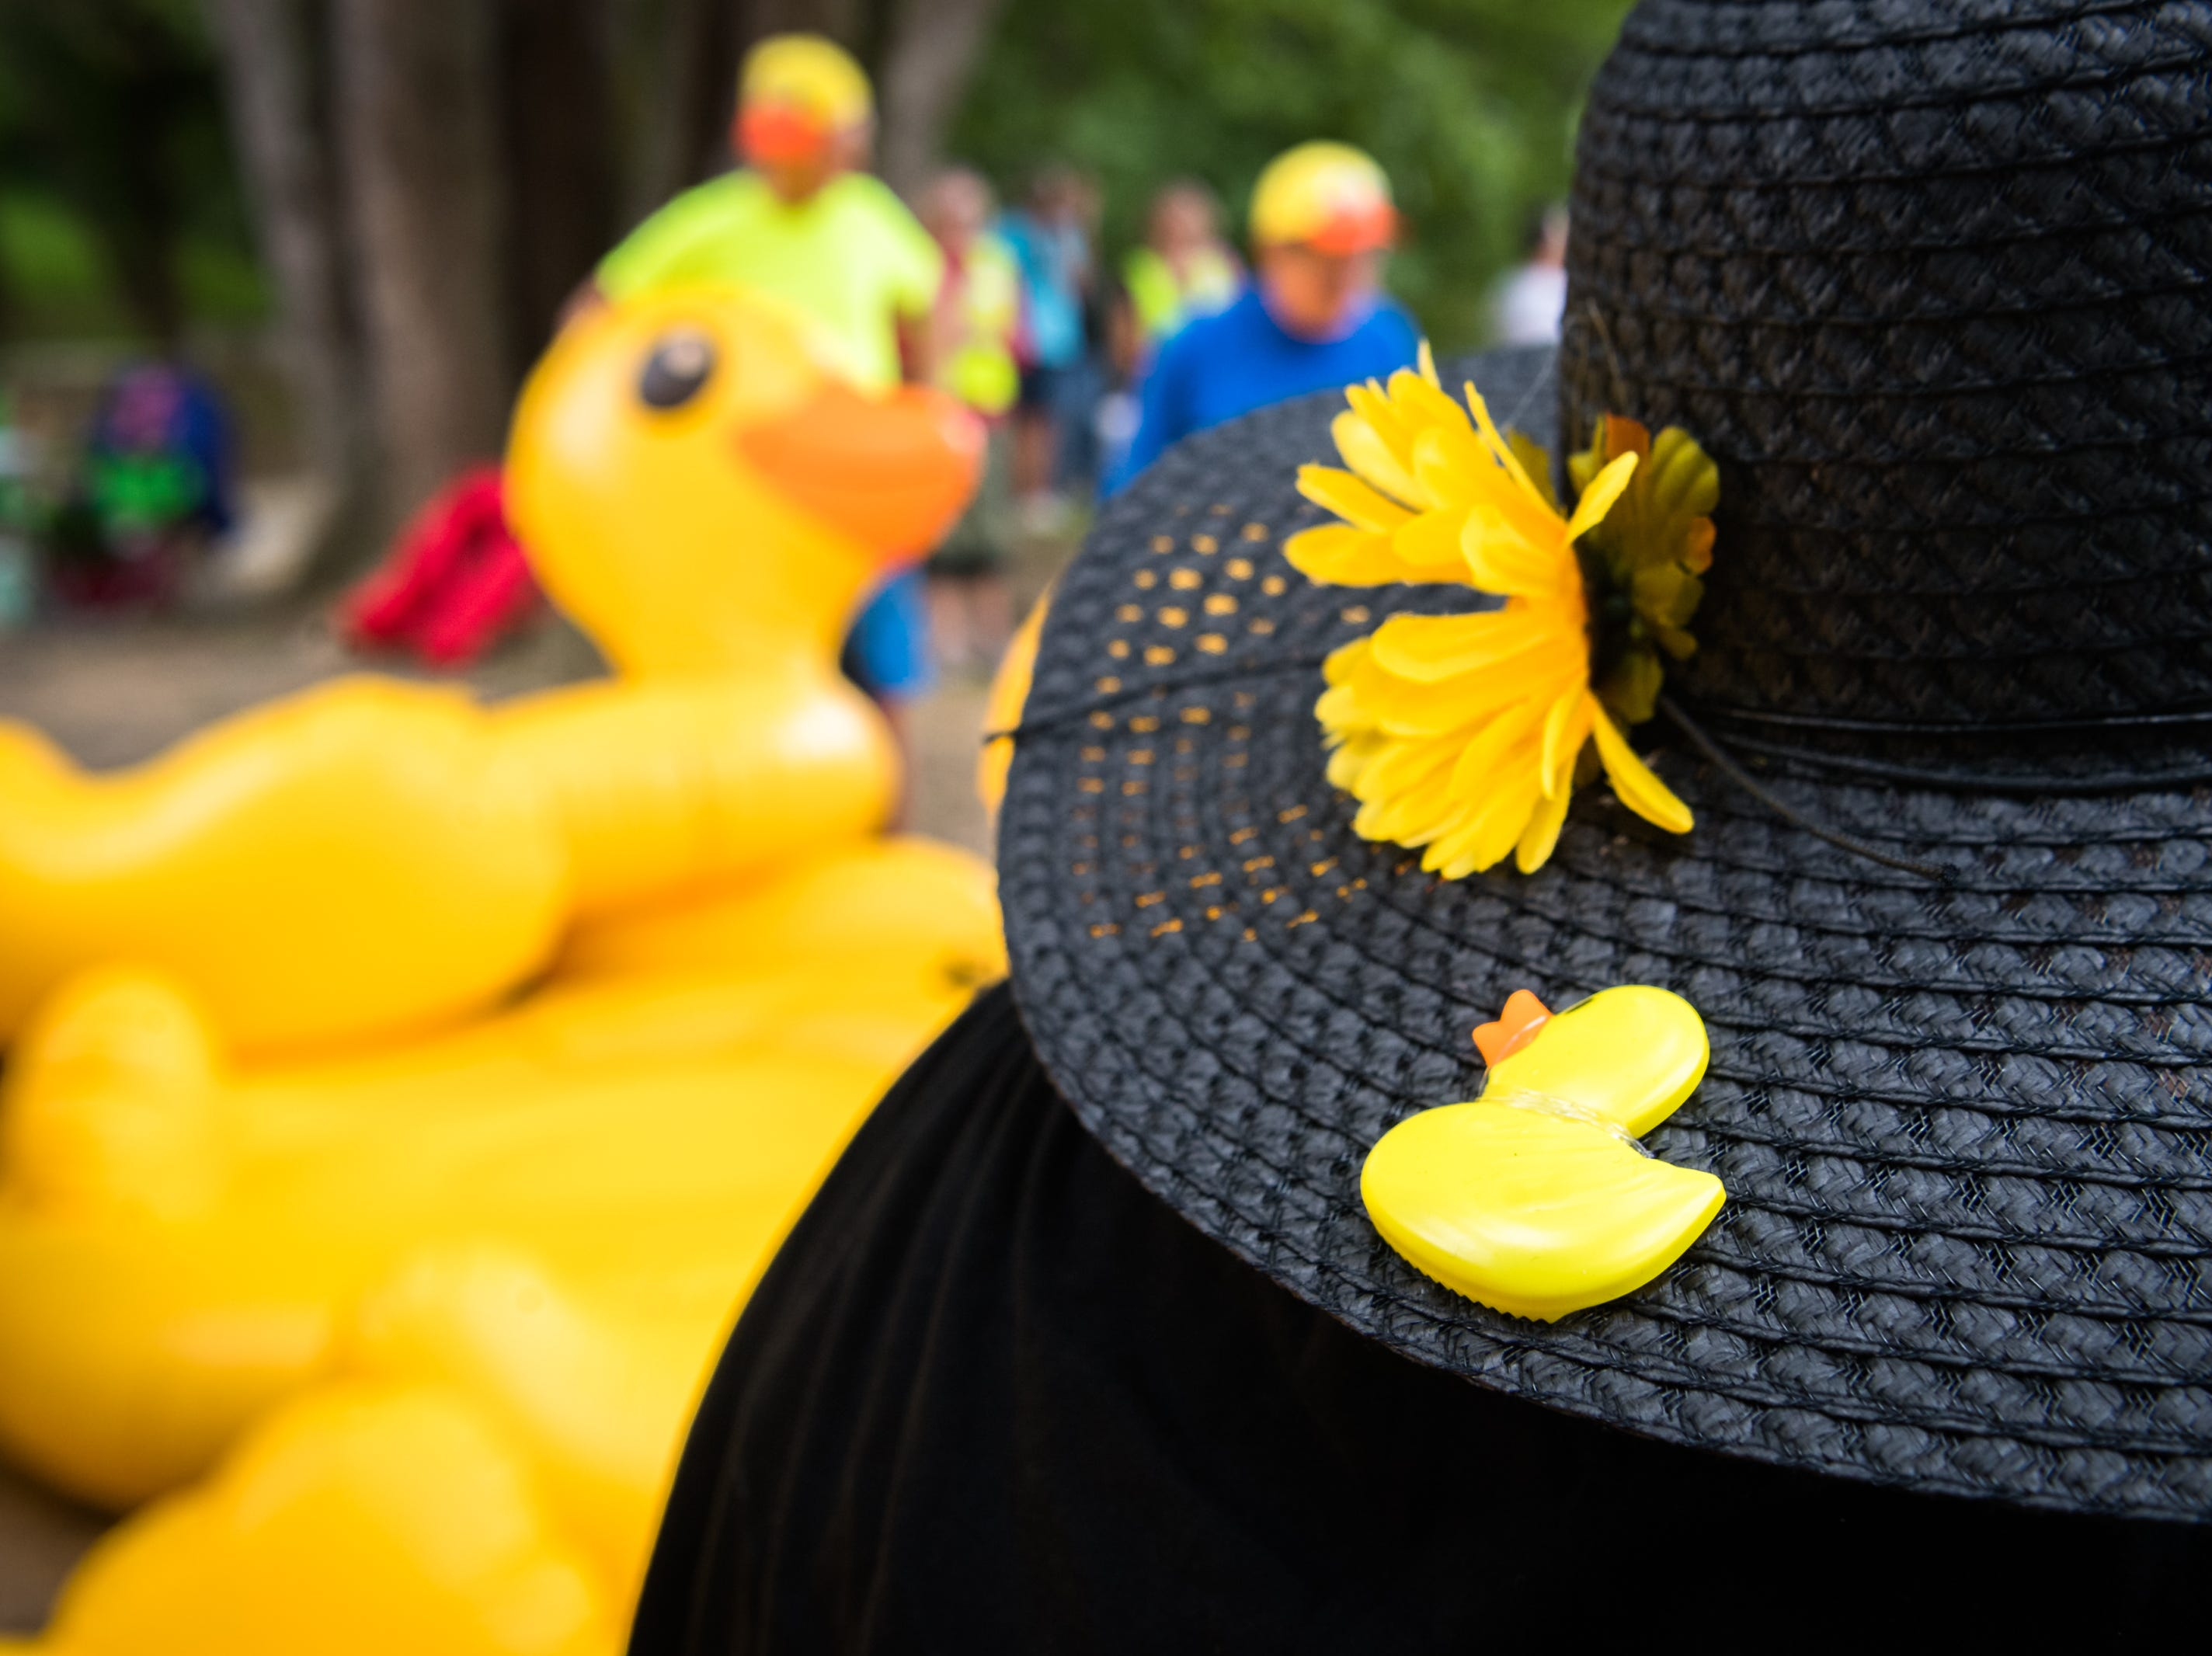 One of the team members from the Just Ducky Anything that Floats parade team, sports a yellow duck pin on her hat as she waits to put in to the French Broad River at Hominy Creek River Park, Saturday, August 18, 2018. The parade ended at New Belgium Brewery where RiverLink's RiverFest took place.